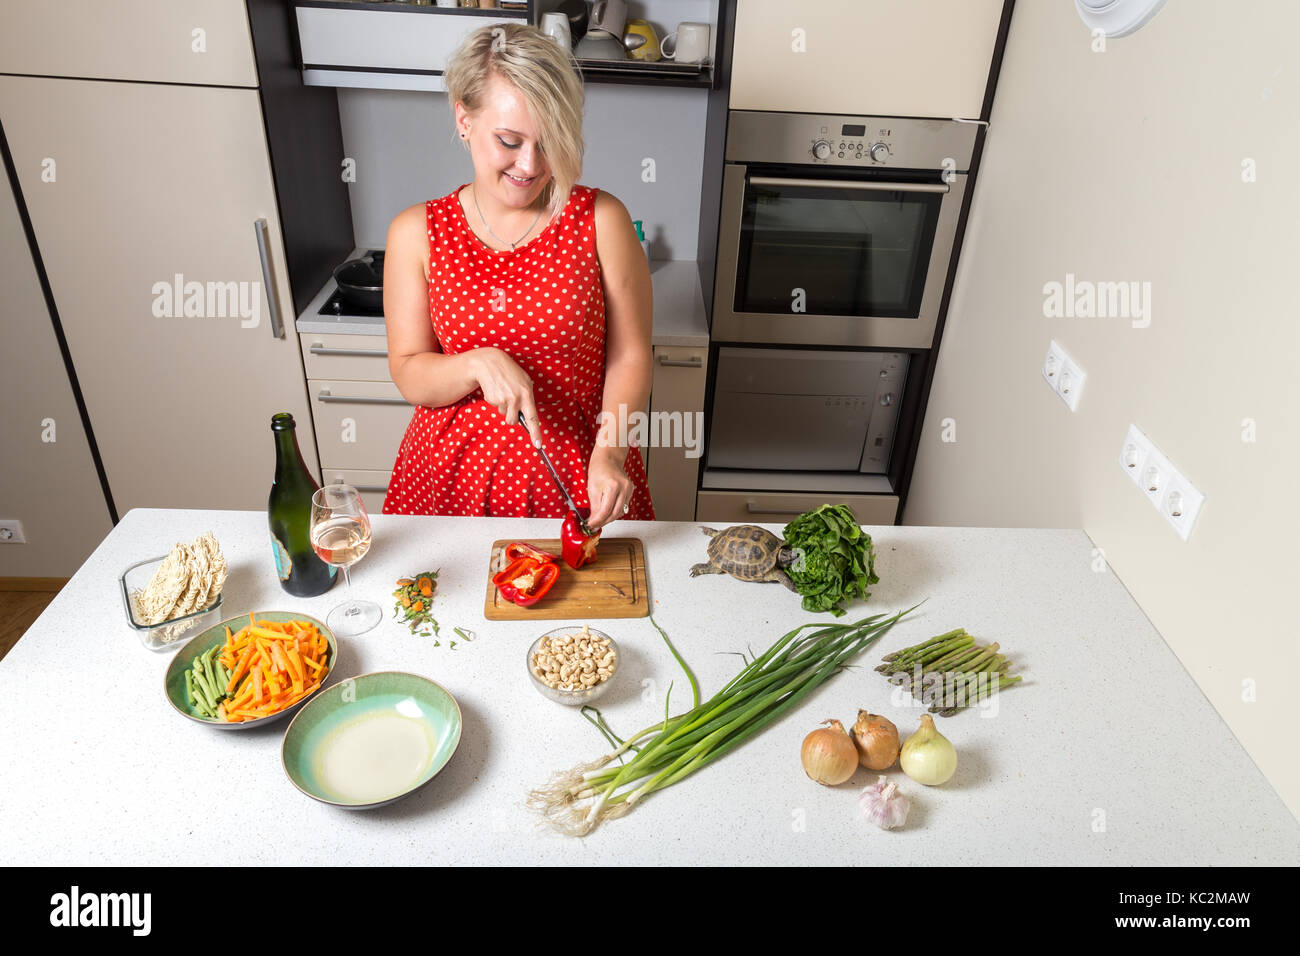 Girl cutting paprika and smiling while turtle eats - Stock Image